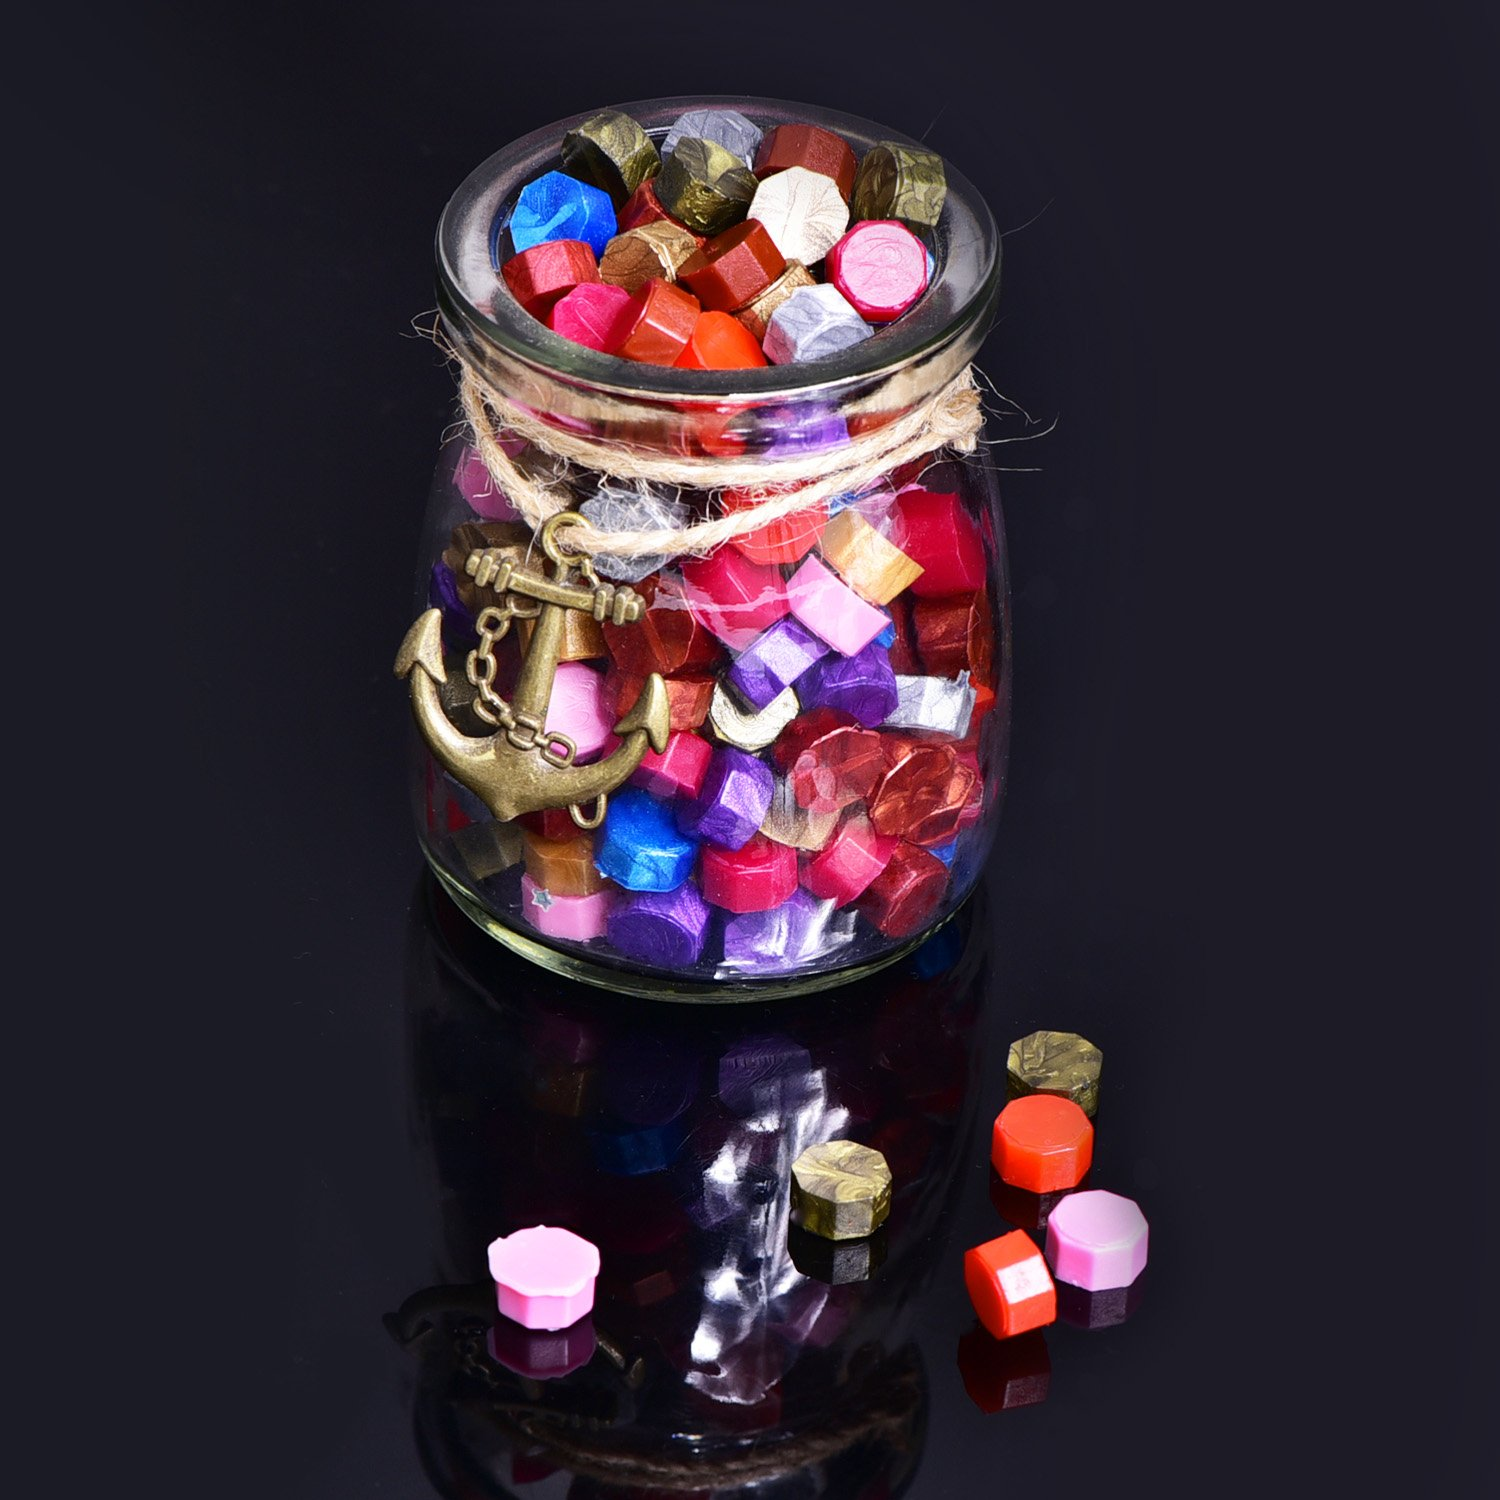 230 Pieces Octagon Sealing Wax Beads Sticks with 2 Pieces Tea Candles and 1 Piece Wax Melting Spoon for Wax Stamp Sealing Bronze Gold